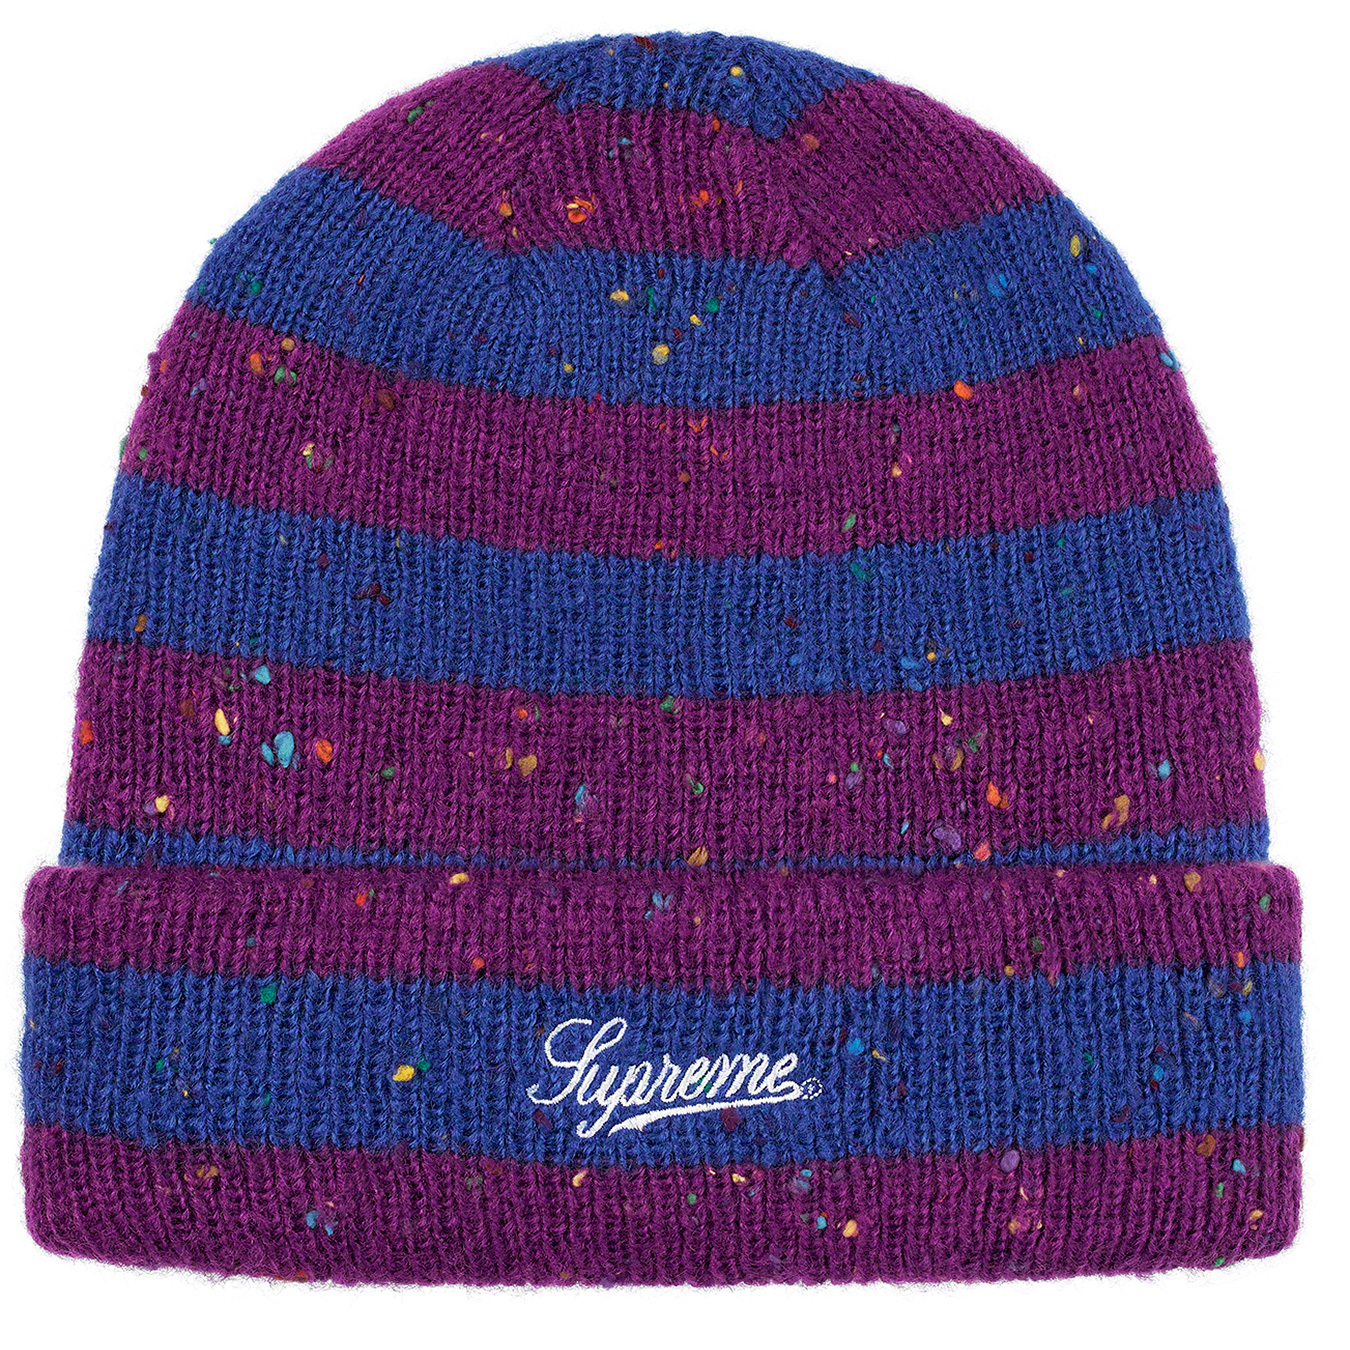 supreme-19aw-19fw-fall-winter-stripe-speckle-beanie